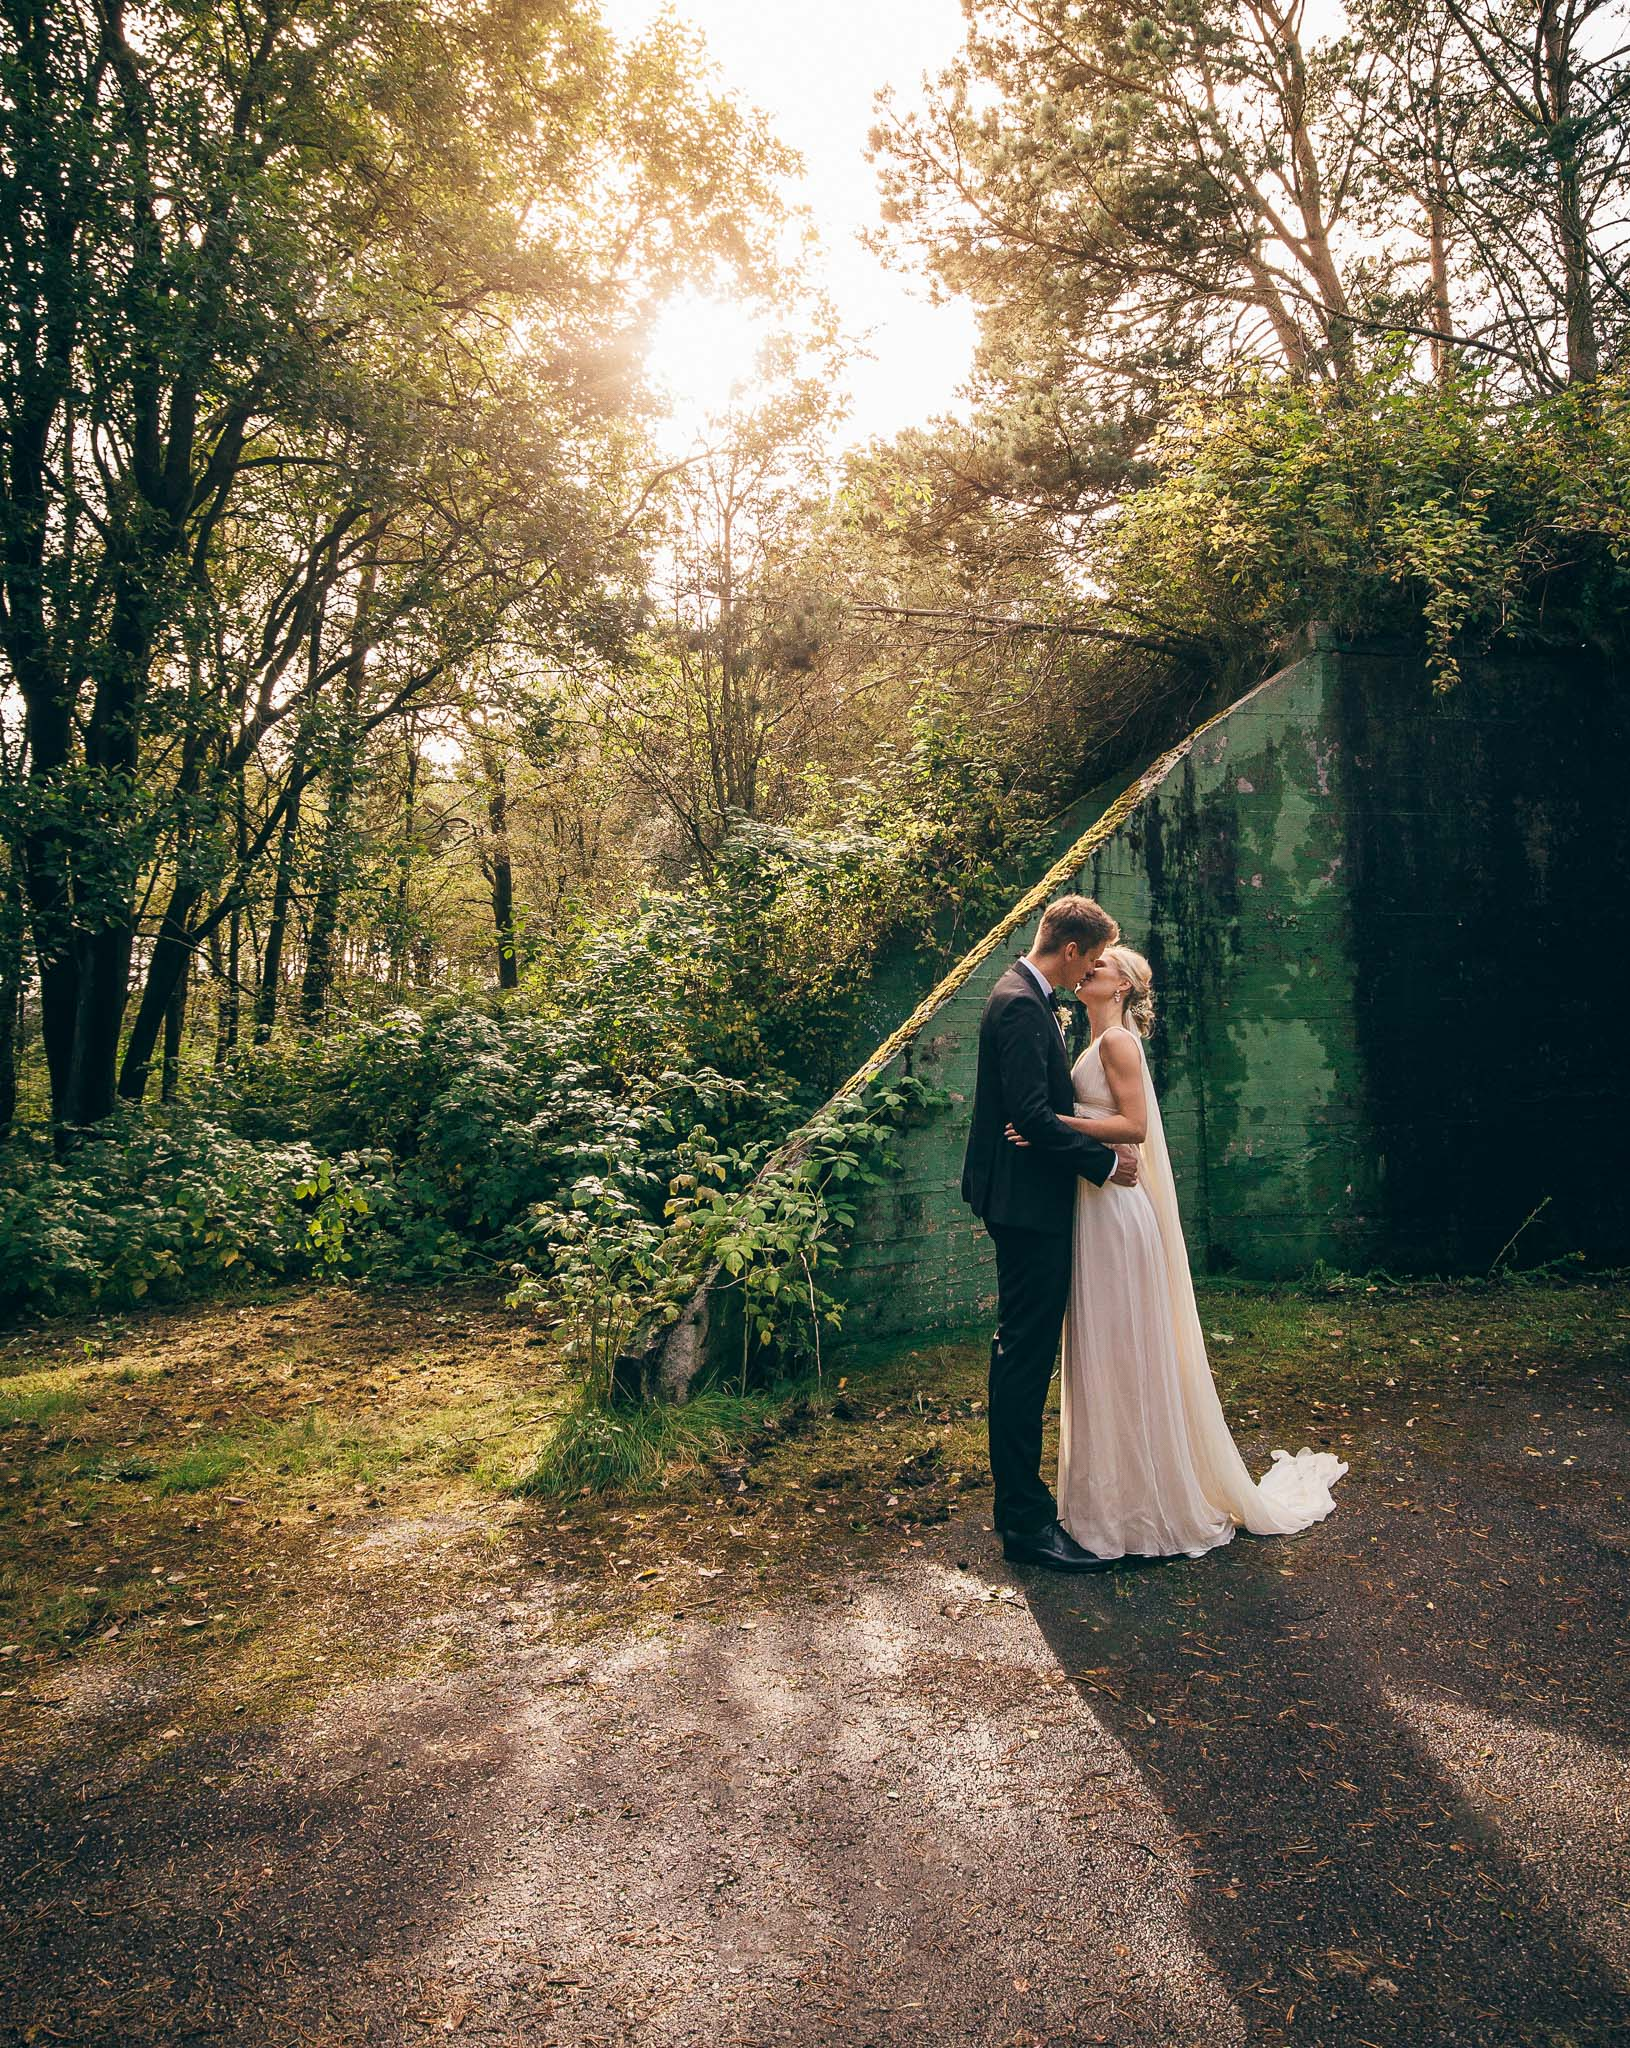 Norway+wedding+photographer+elopement+pre+wedding+Rogaland+bryllupsfotograf+Casey+Arneson-206.jpg